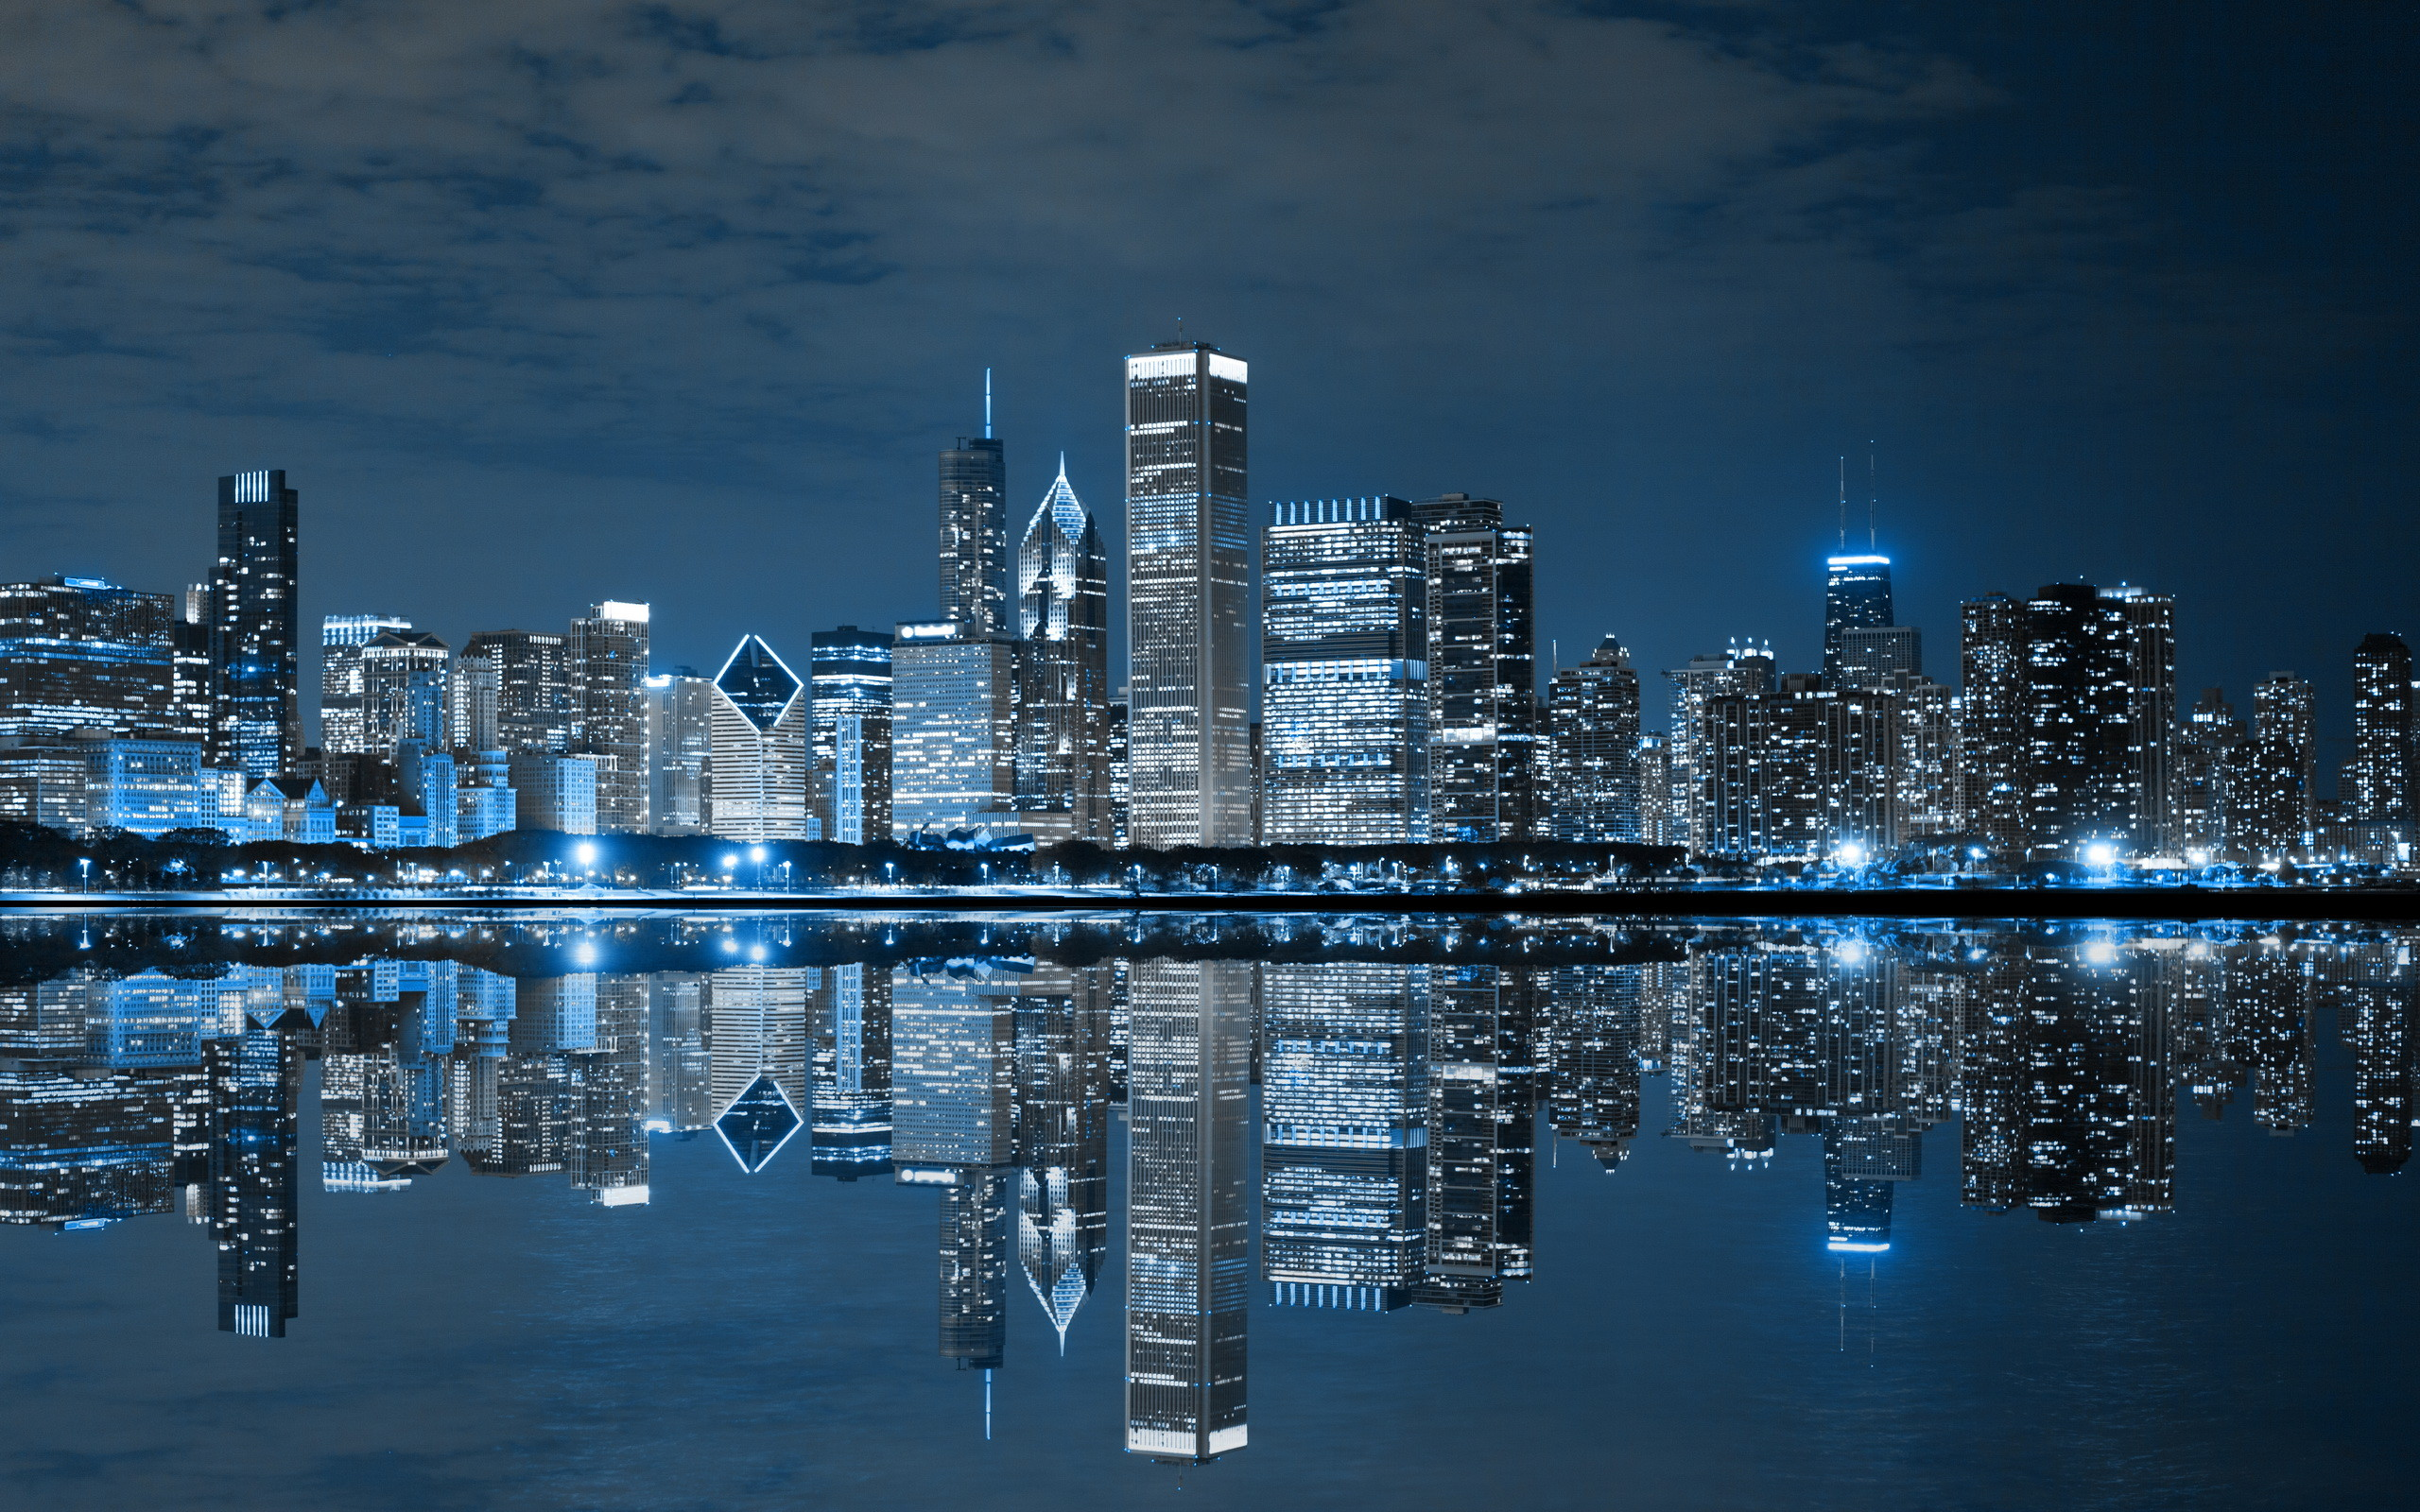 2560x1600 chicago wallpaper iphone 6 - Google Search | Desktop Wallpapers | Pinterest  | Chicago wallpaper